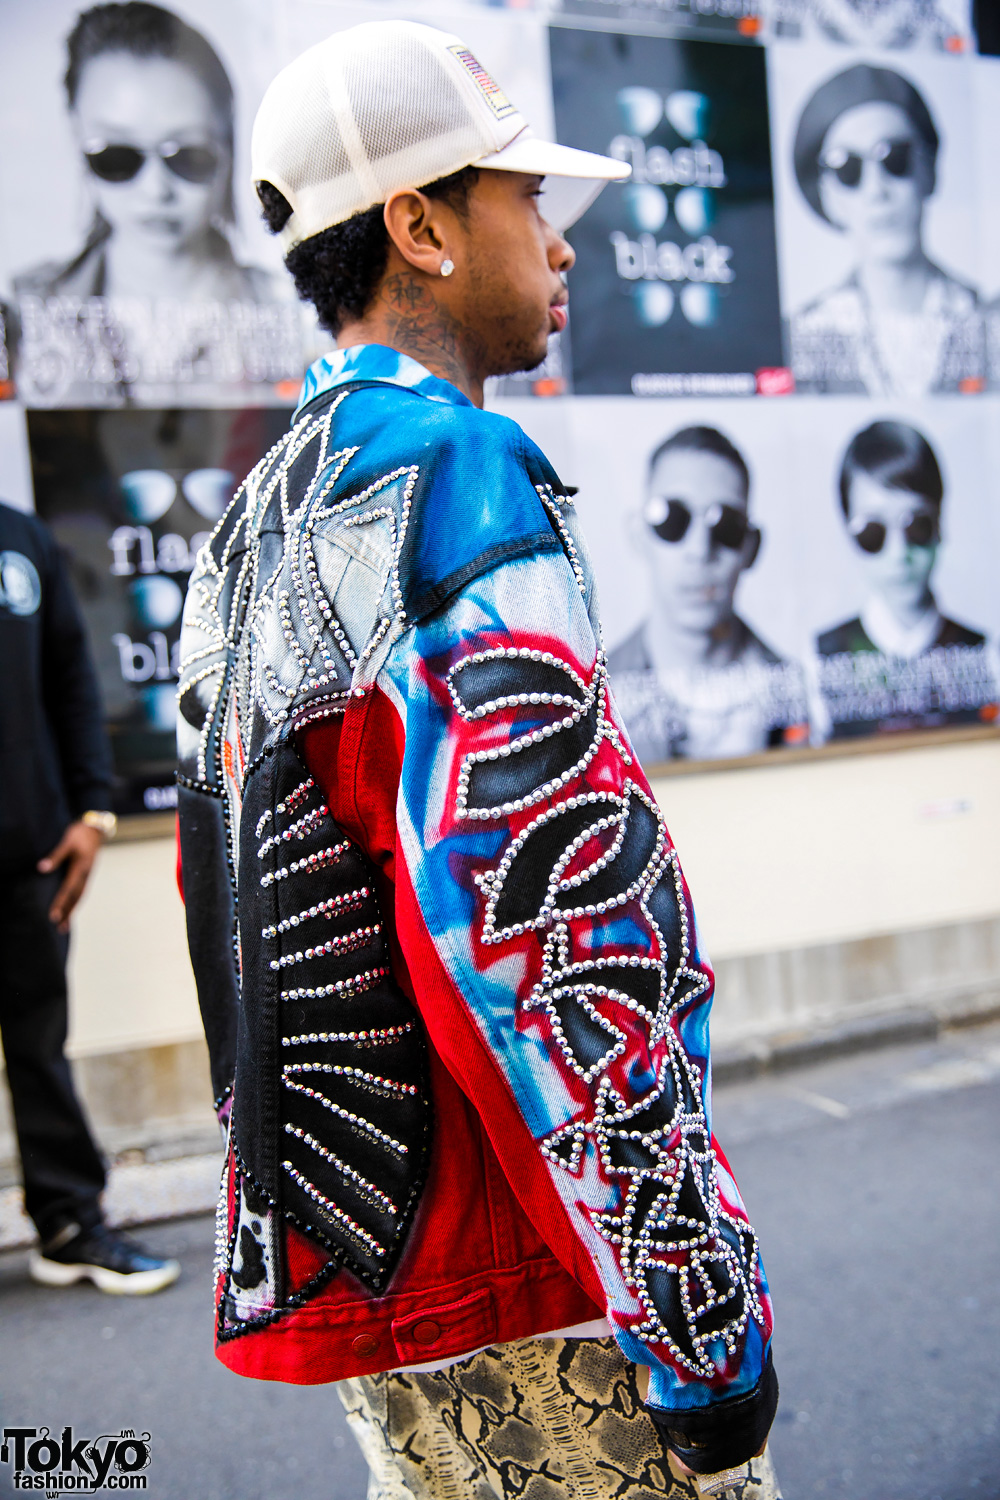 Dog Harajuku Fashion Fangophilia Rings Myob Nyc Bag: Tyga On The Street In Harajuku W/ VietRaw, BAPE & Dog